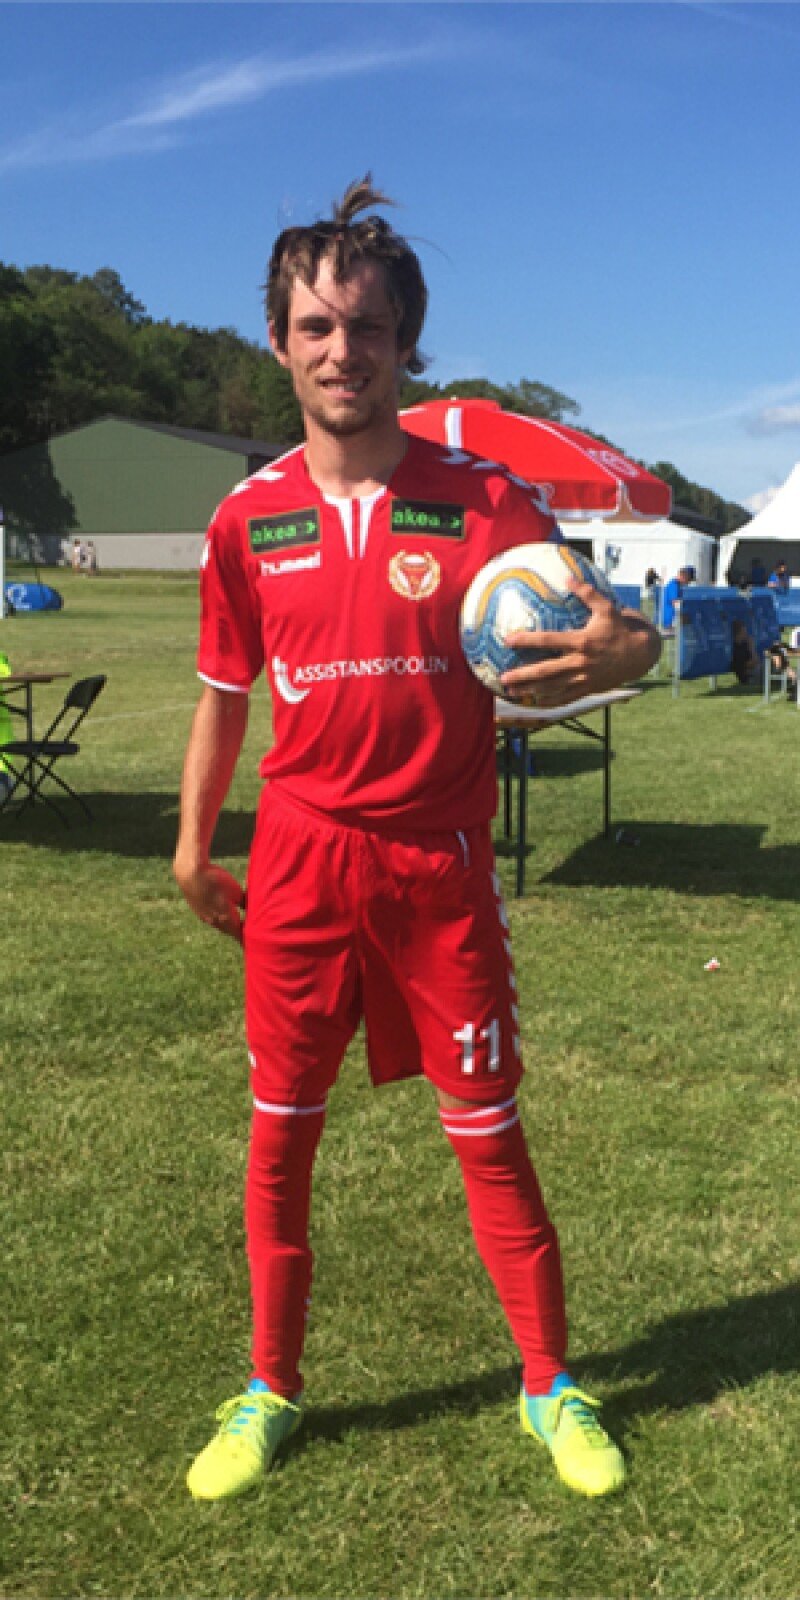 A man stands in a red football kit holding a football and facing the camera at the sidelines of a football pitch.